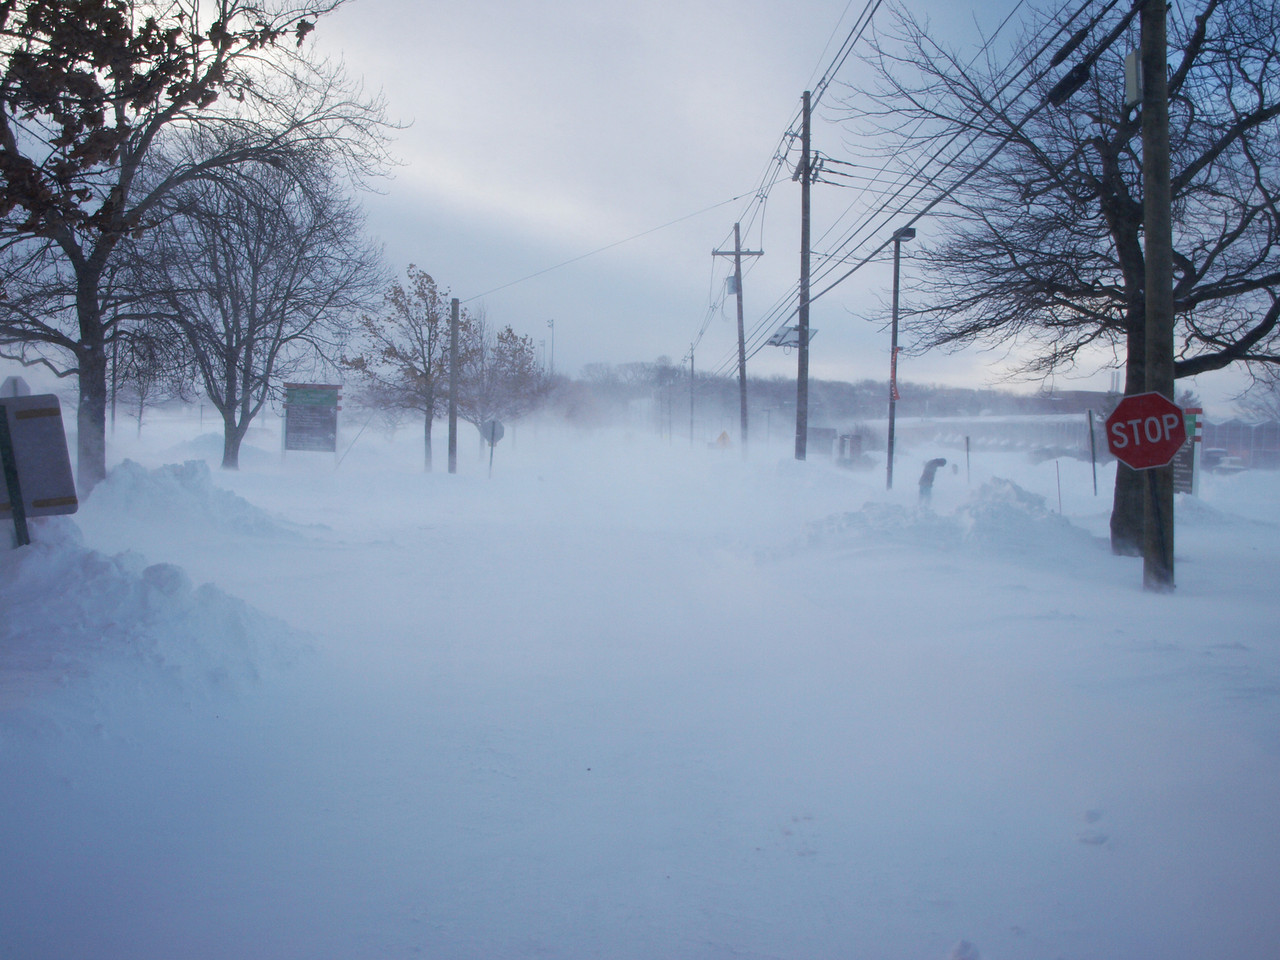 """In the Boxing Day Blizzard of 2010 over 30"""" of snow fell in some areas of Central and Northern New Jersey. Photo: Matt Drews"""